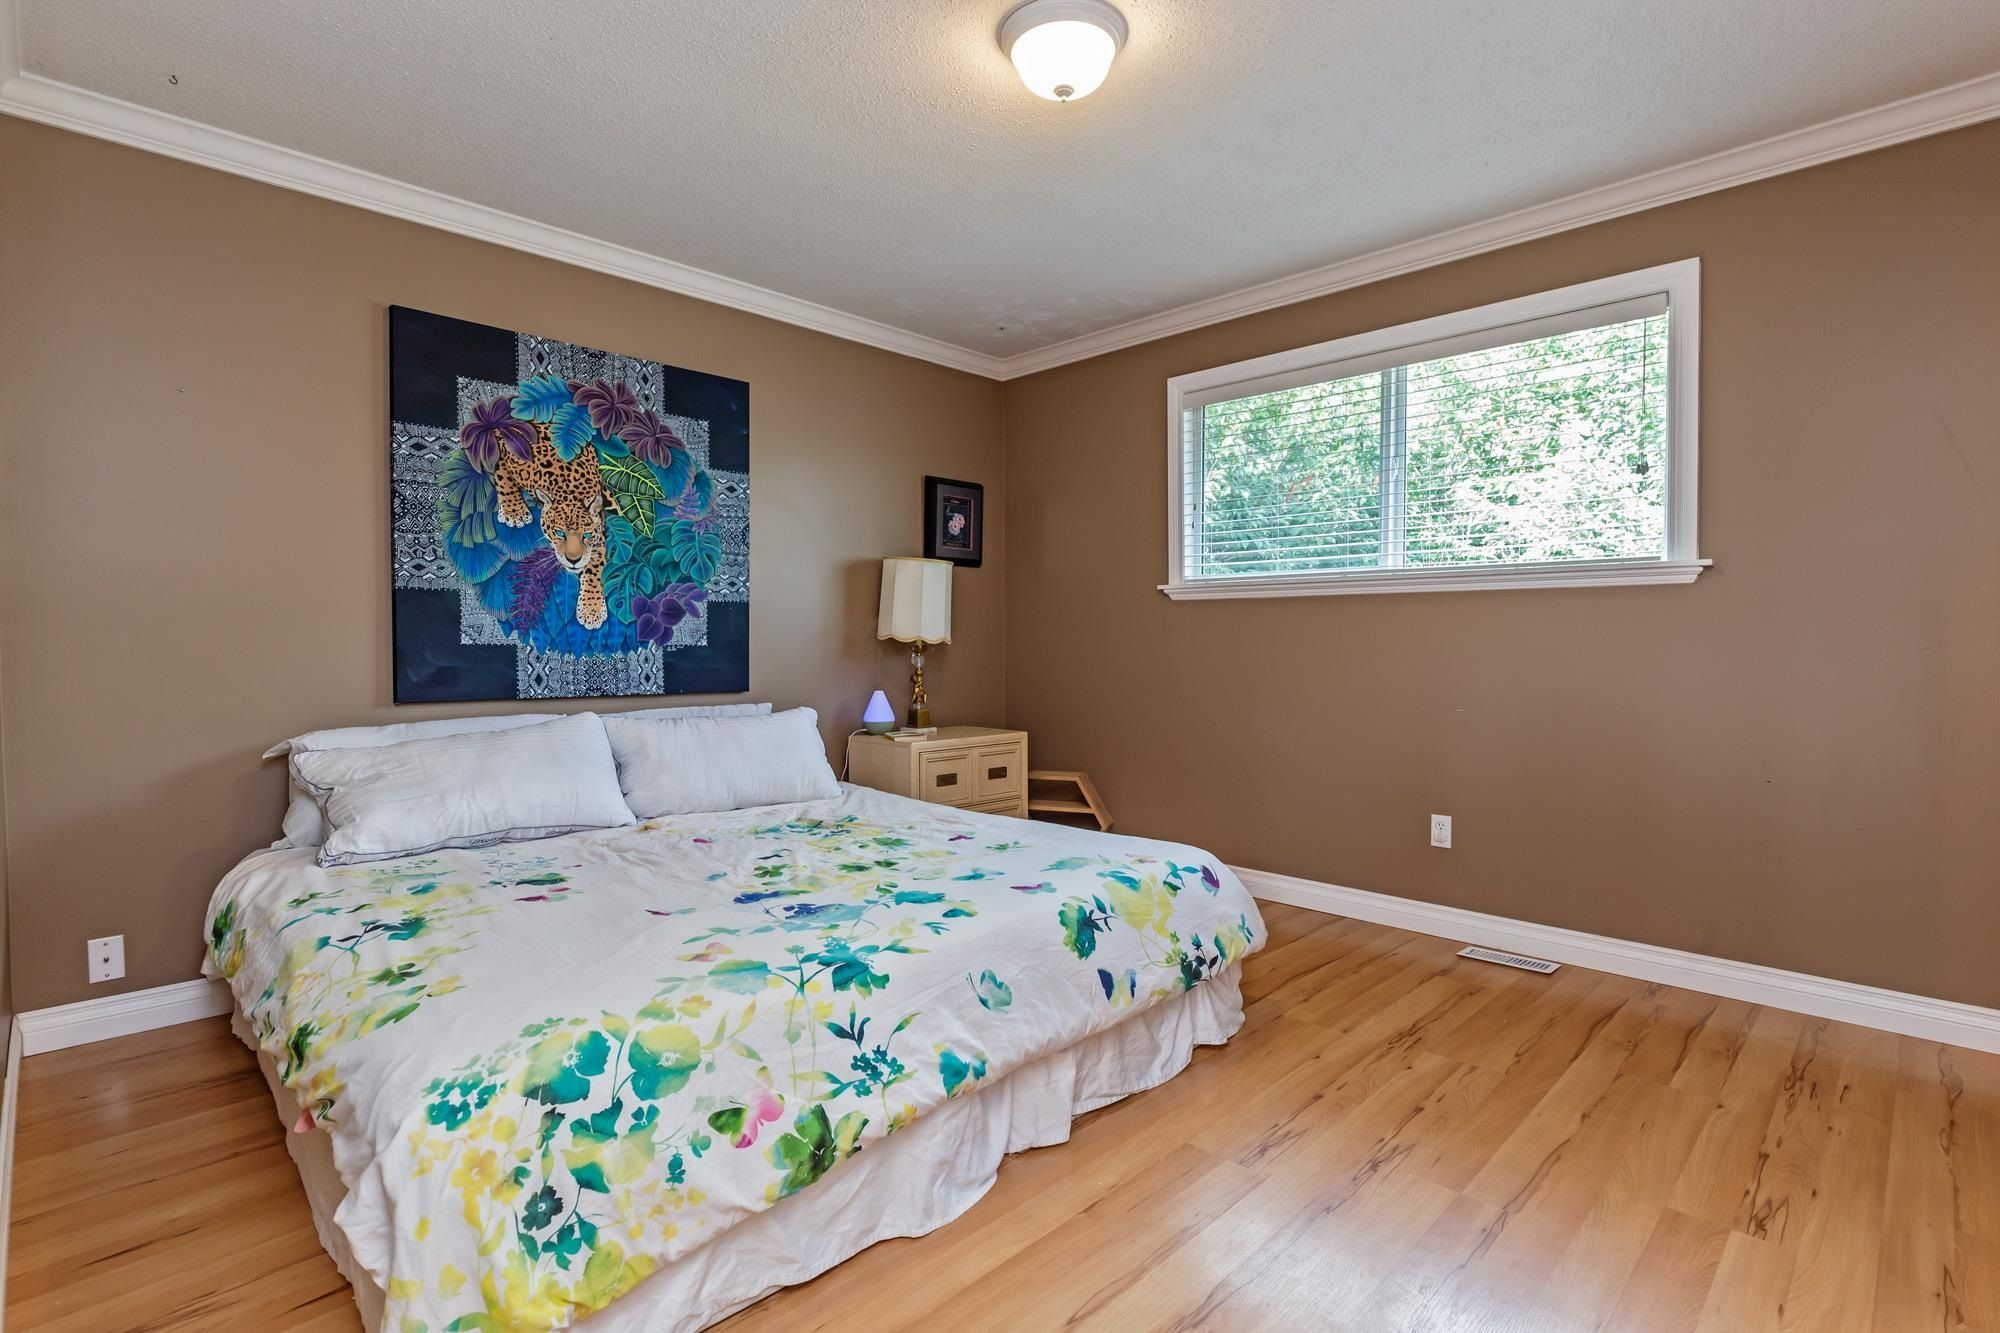 Photo 14: Photos: 32319 ATWATER Crescent in Abbotsford: Abbotsford West House for sale : MLS®# R2609136